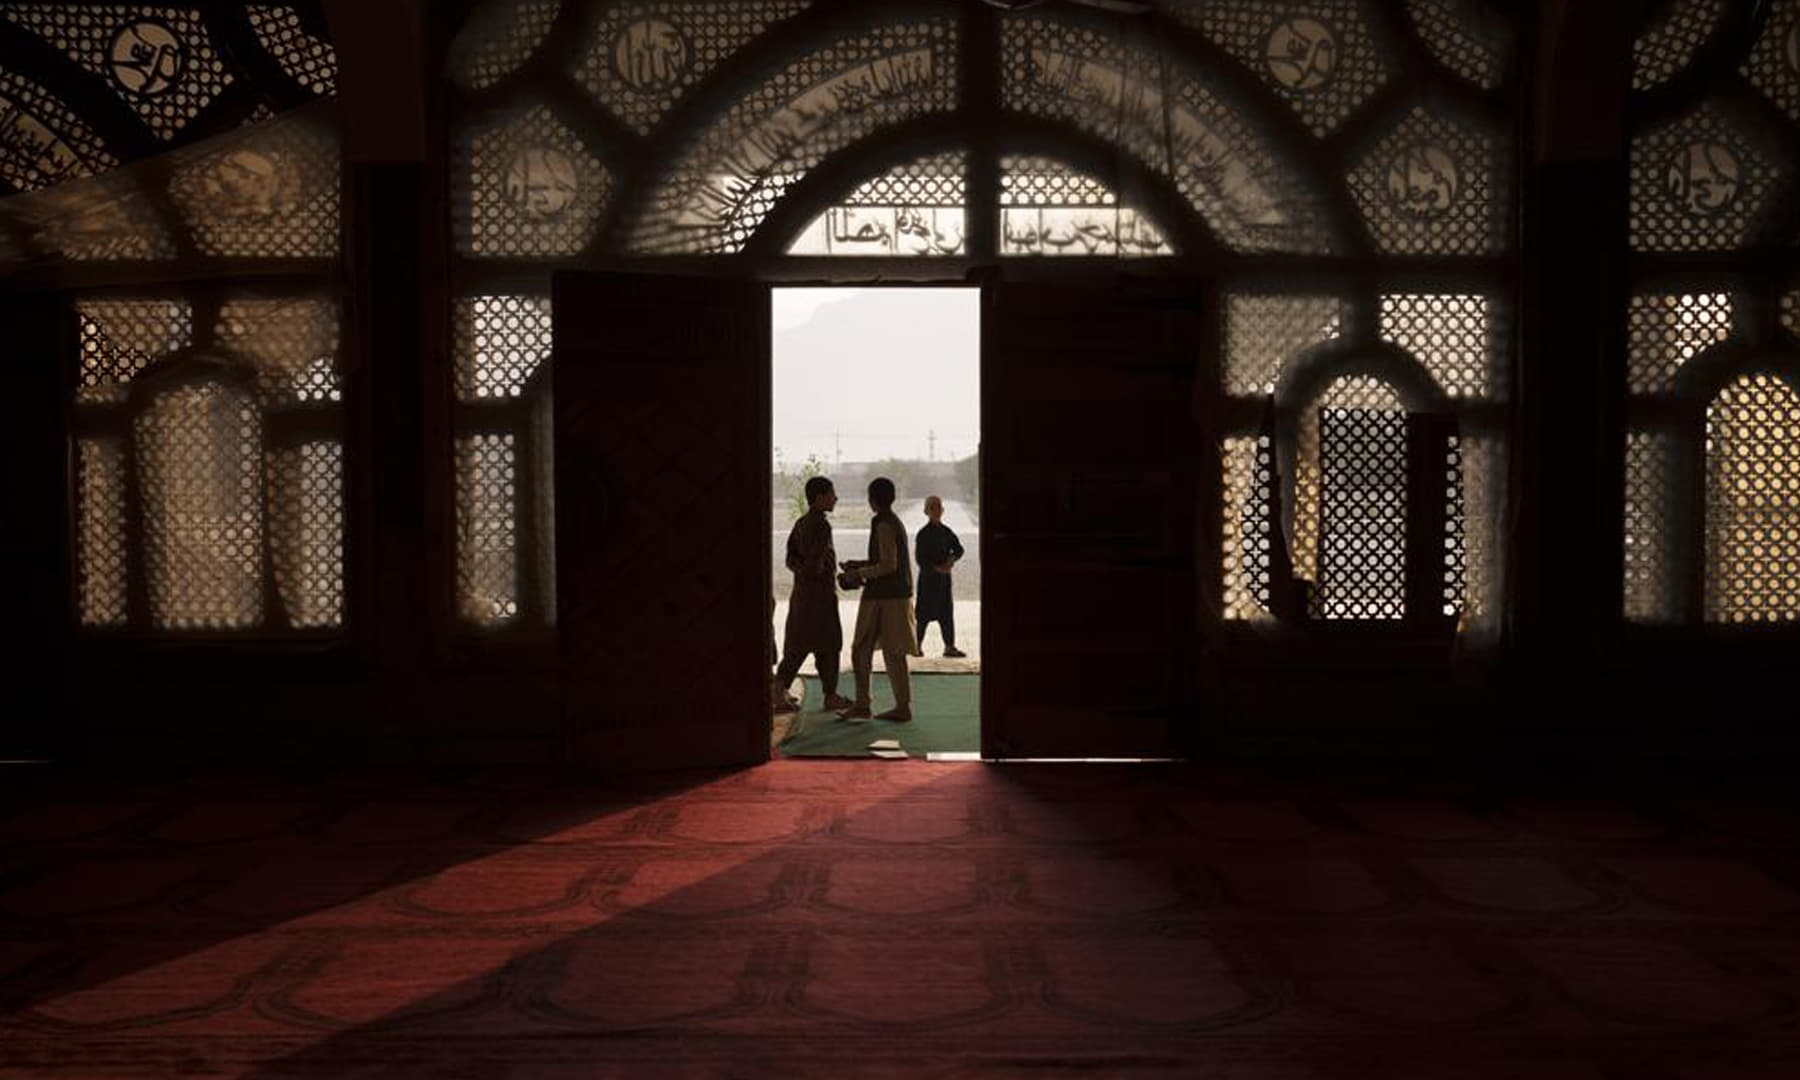 Afghan students walk out of the mosque at the Khatamul Anbiya madressah after morning prayers in Kabul, Afghanistan. — AP